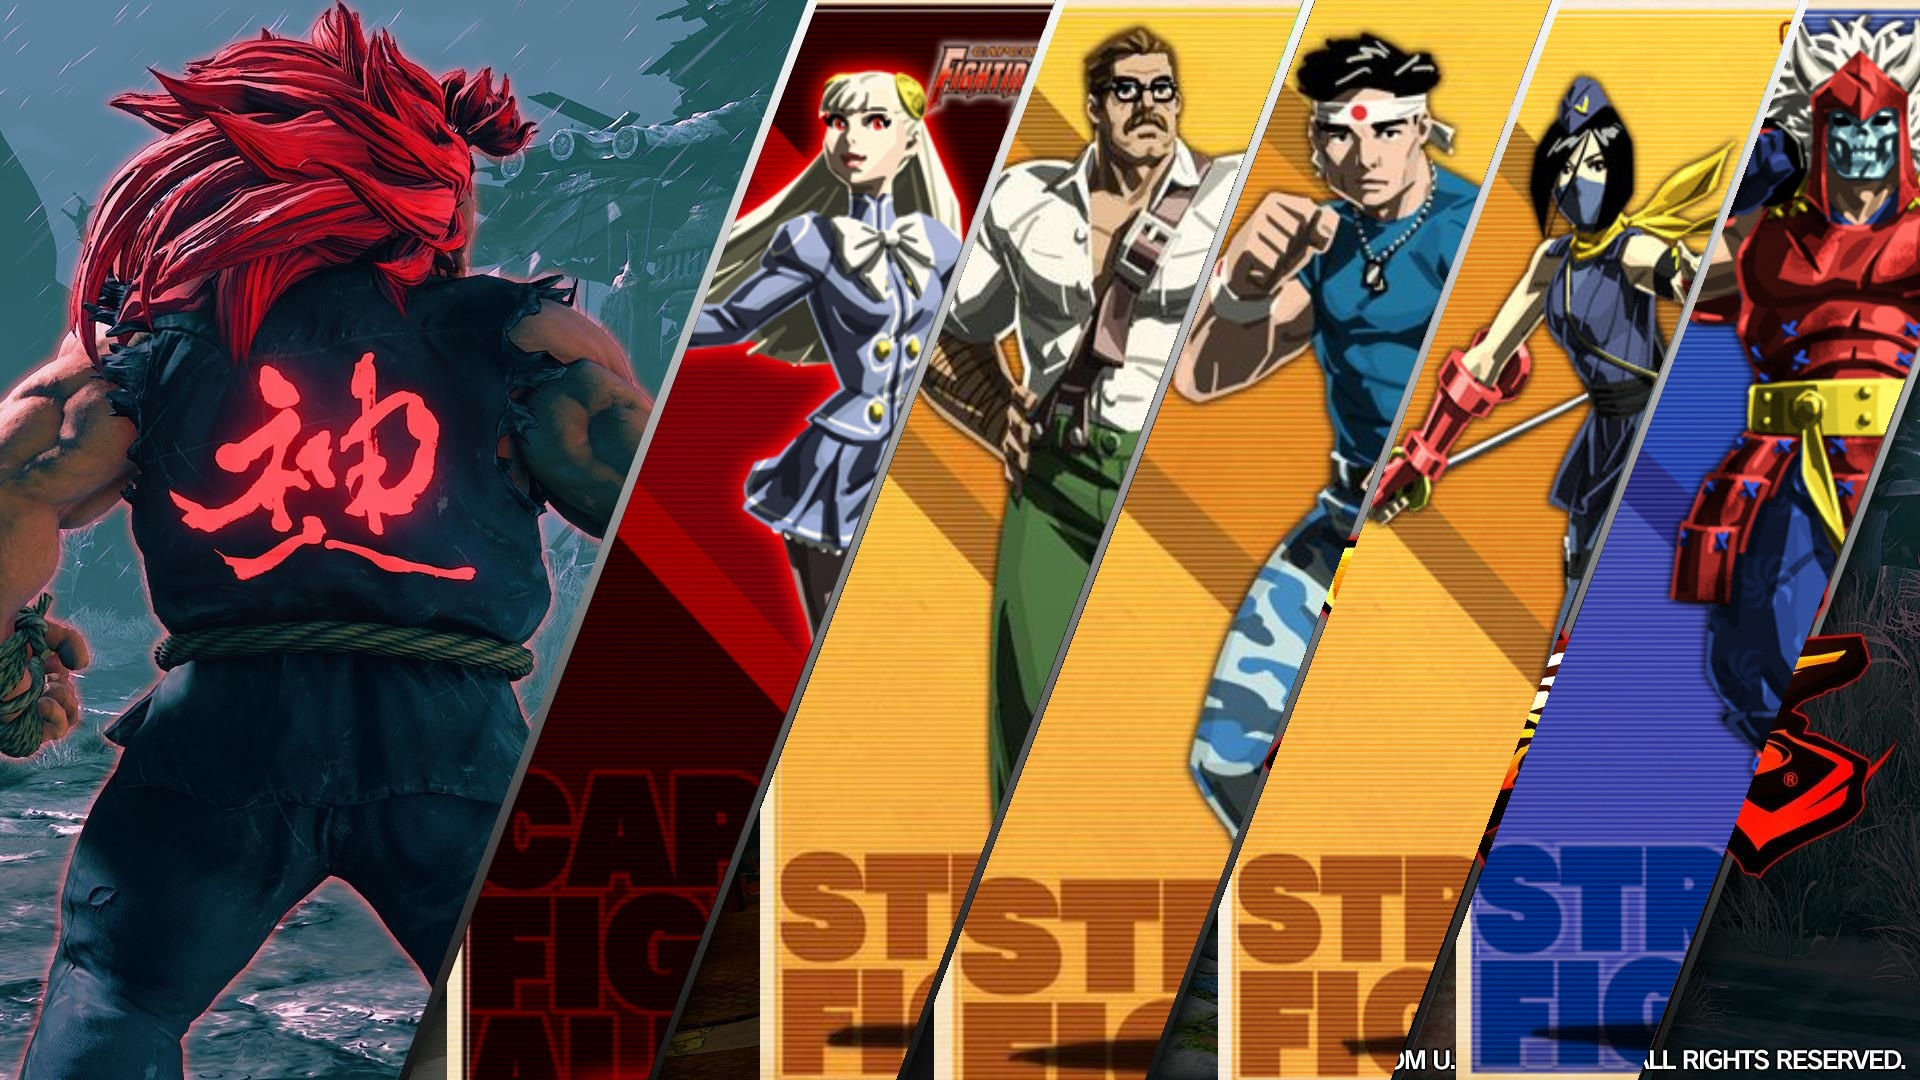 Street Fighter New TV Series - https://www.google.com/amp/s/www.gamespot.com/amp-articles/a-new-street-fighter-tv-show-is-in-the-works-aims-/1100-6457677/